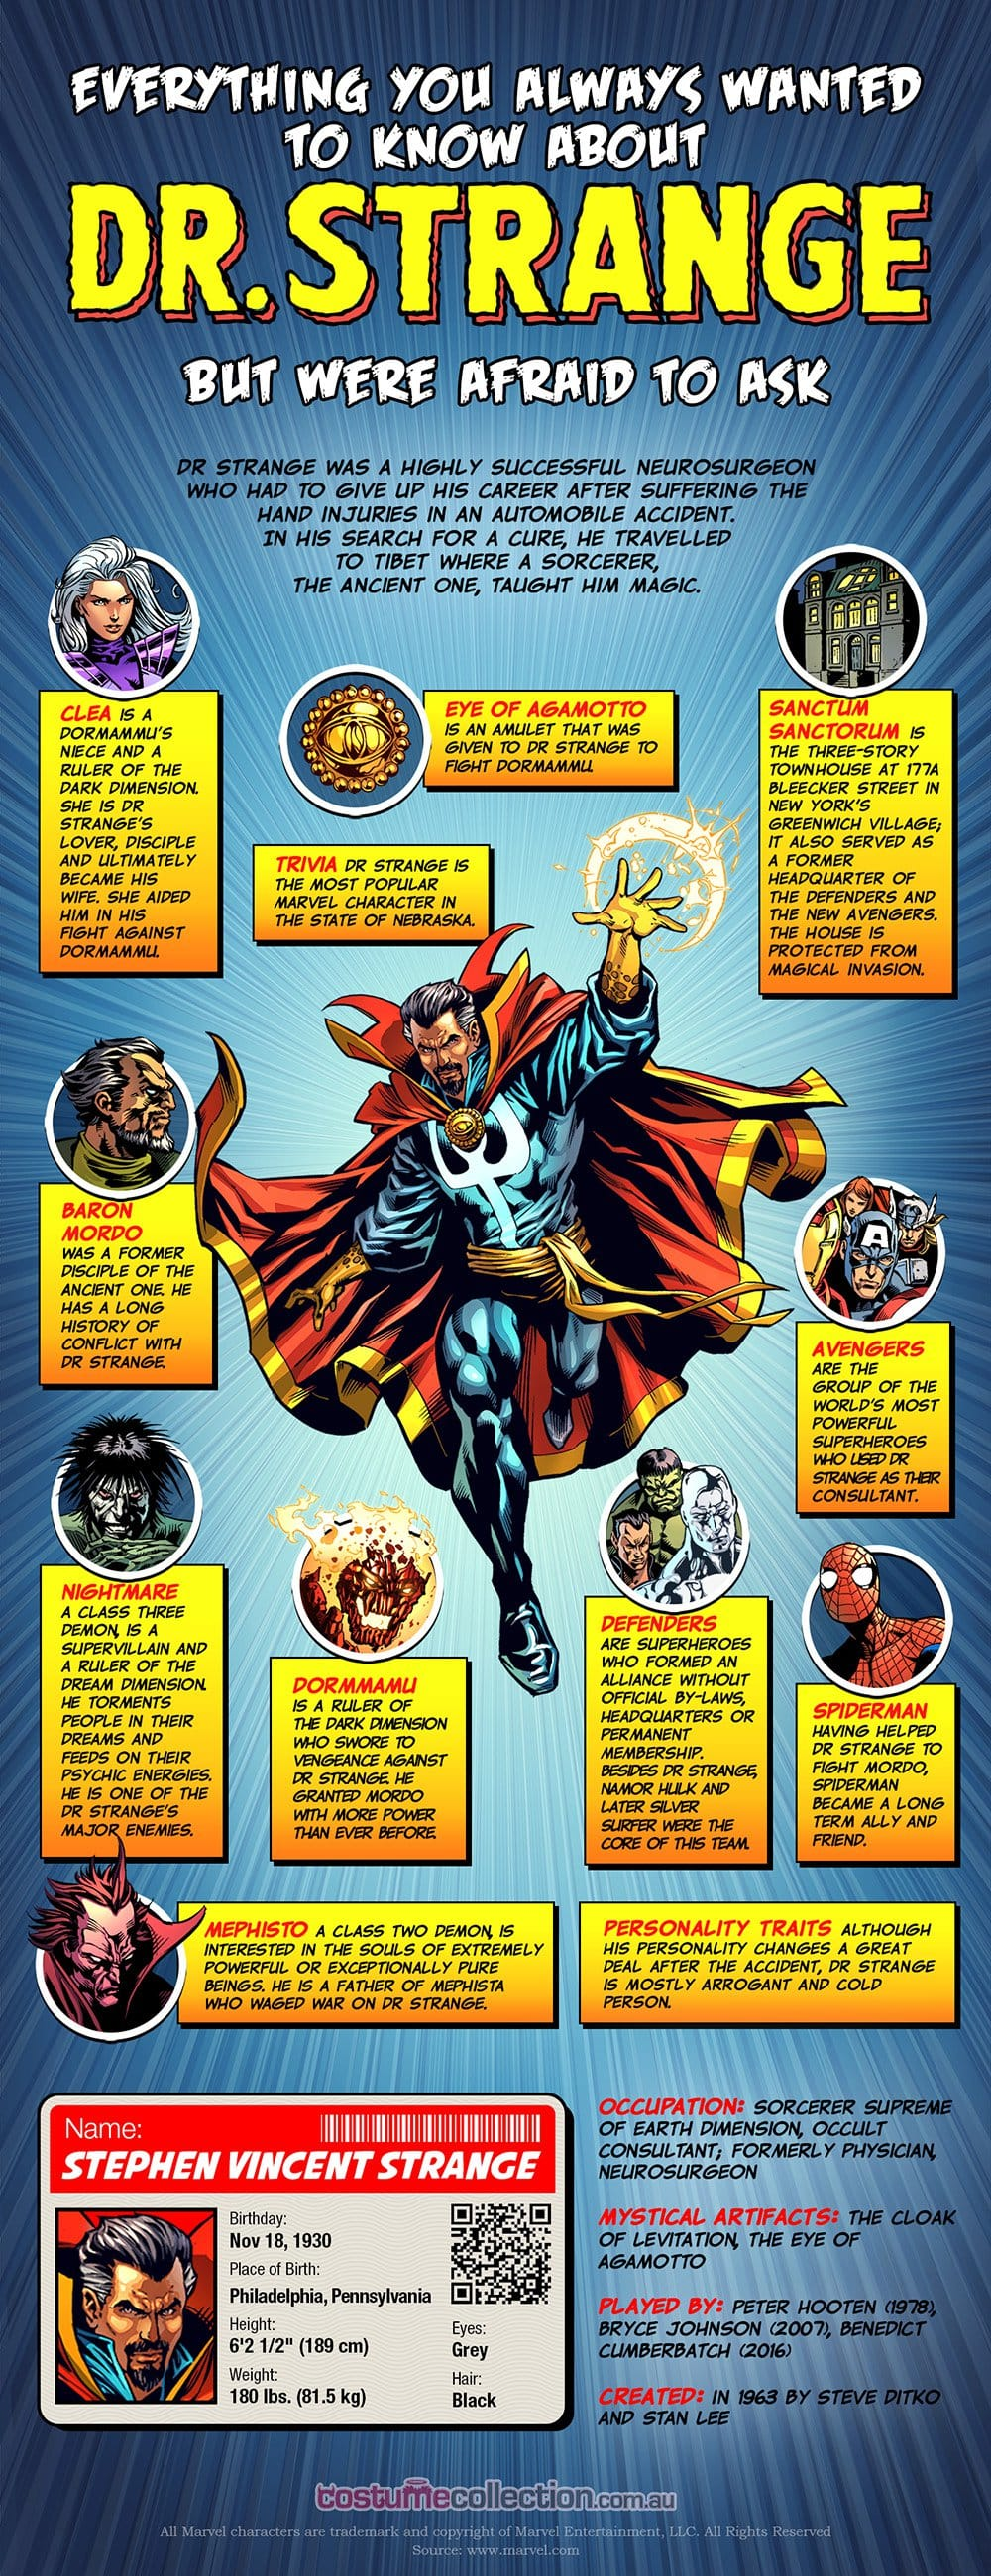 Everything you Always Wanted to Know About Dr. Strange